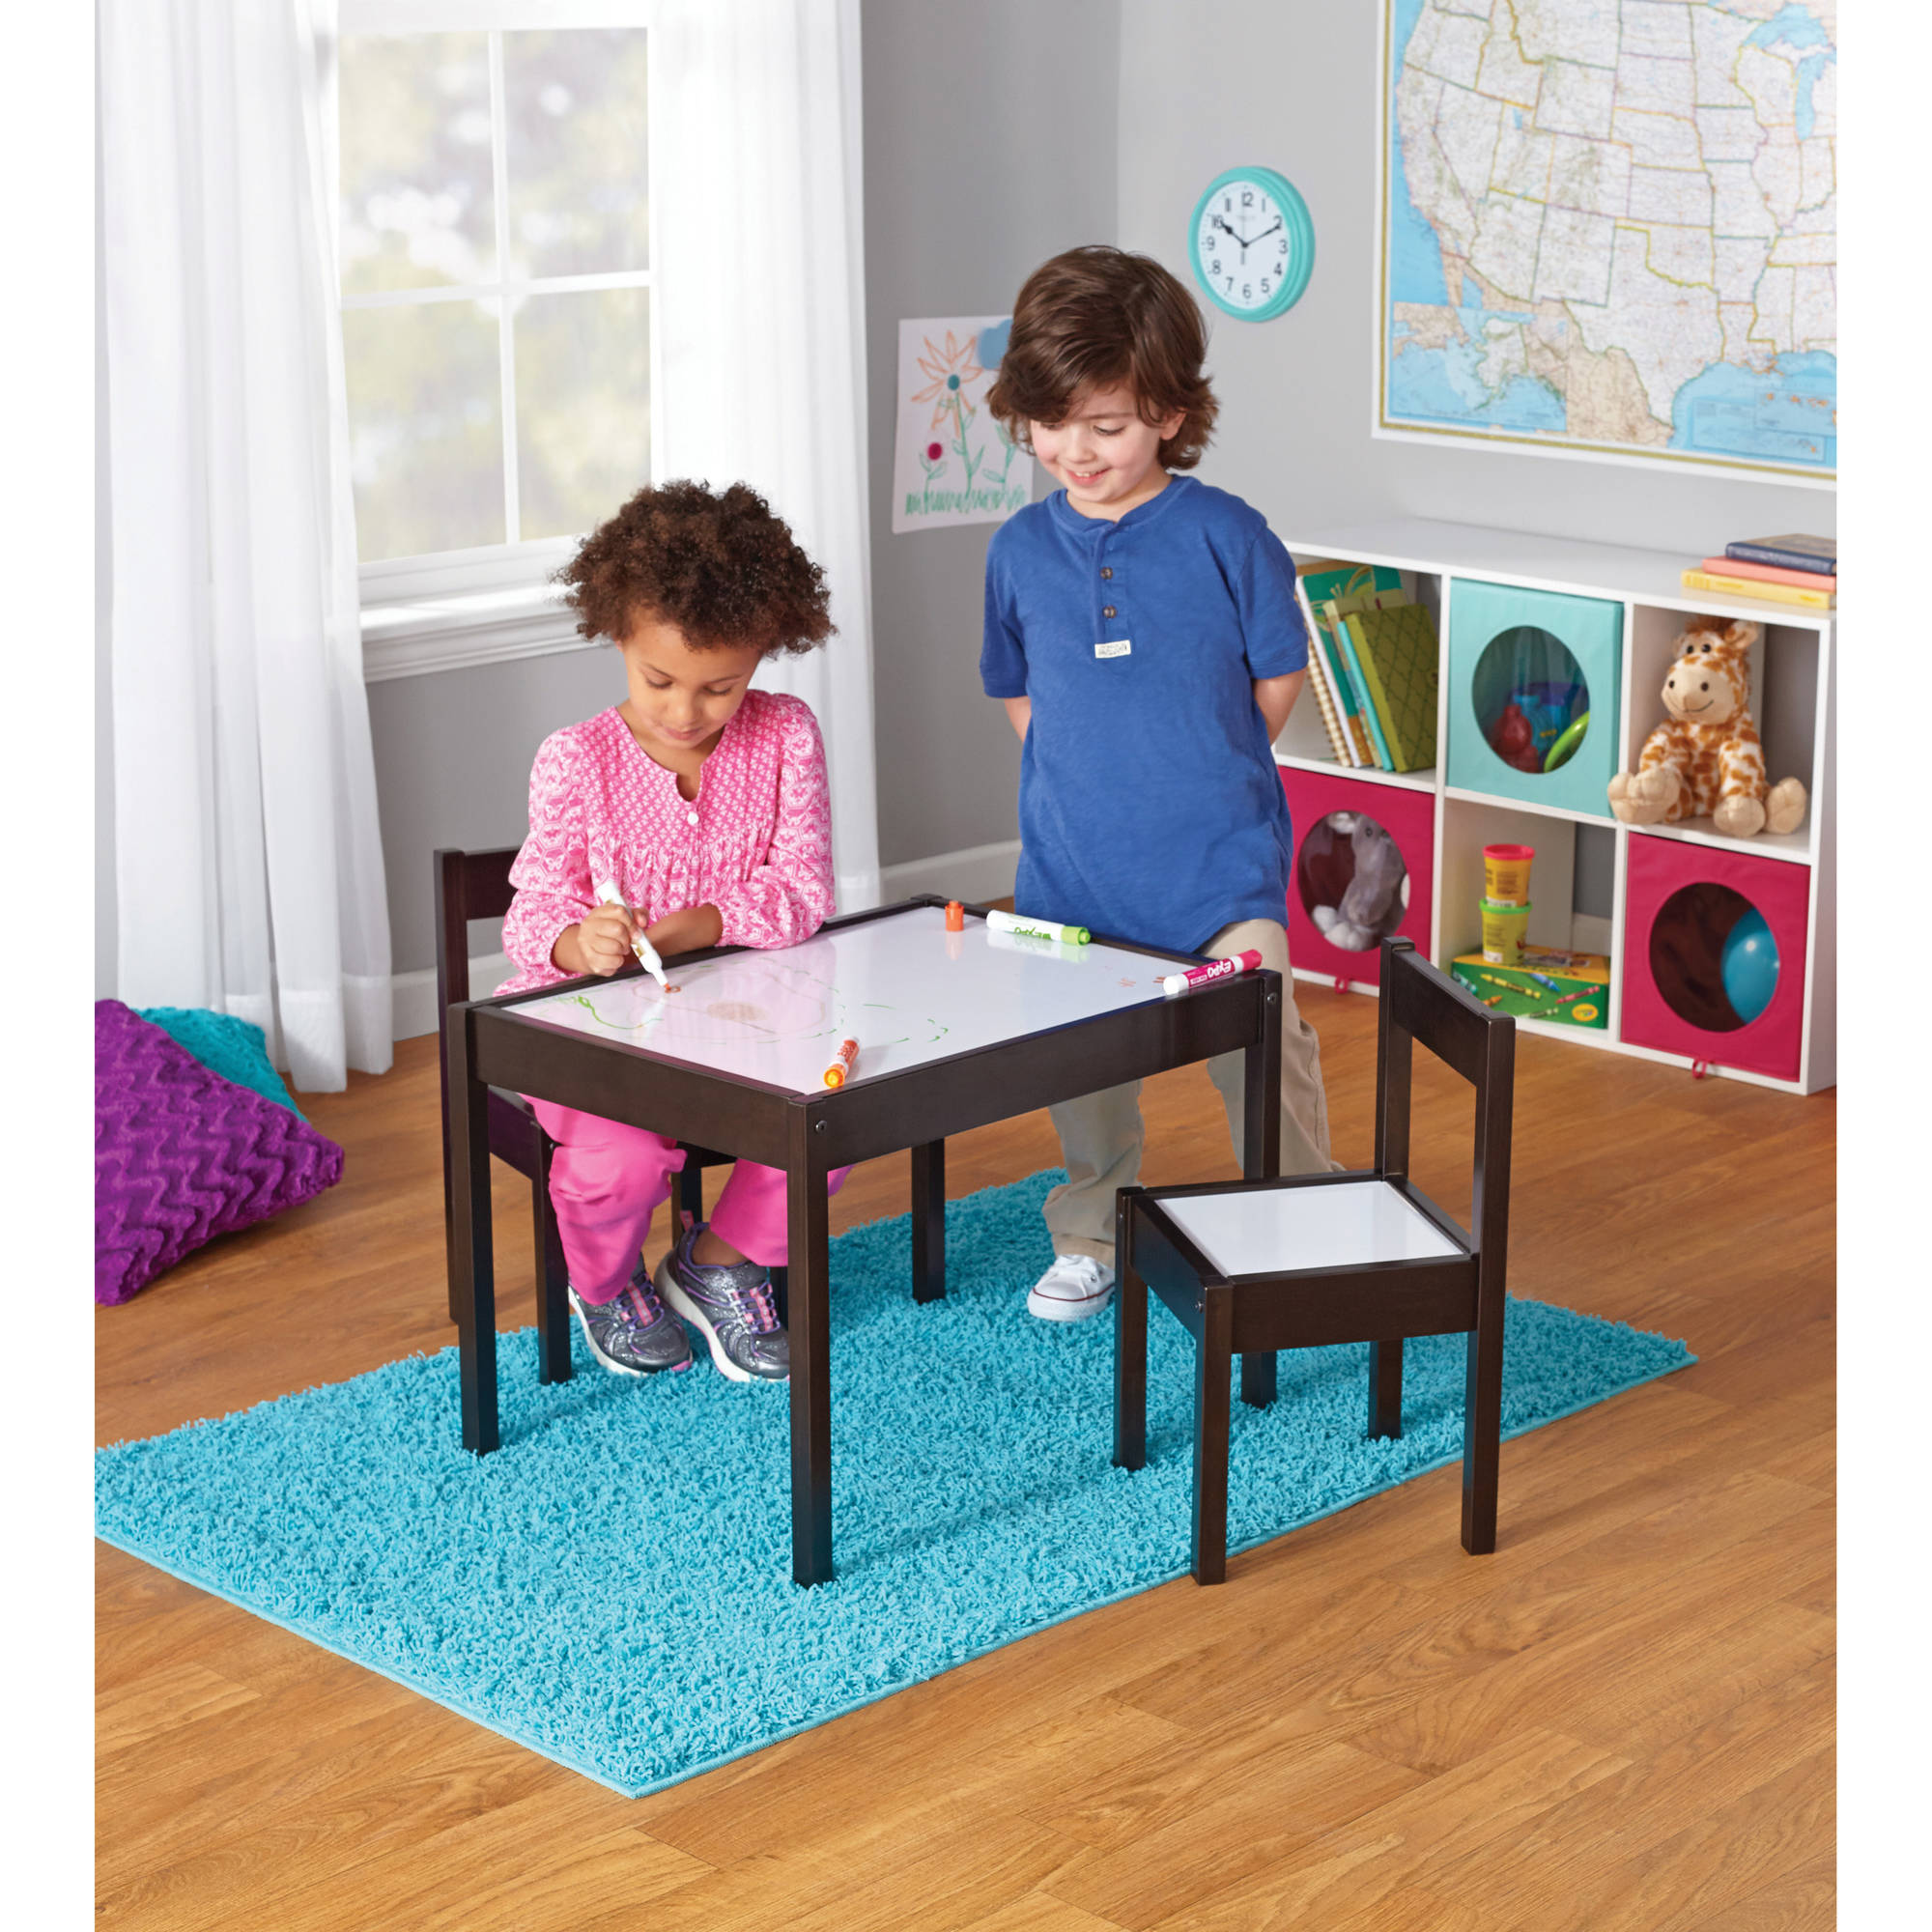 3 Piece Children s Table and Chairs Espresso Walmart